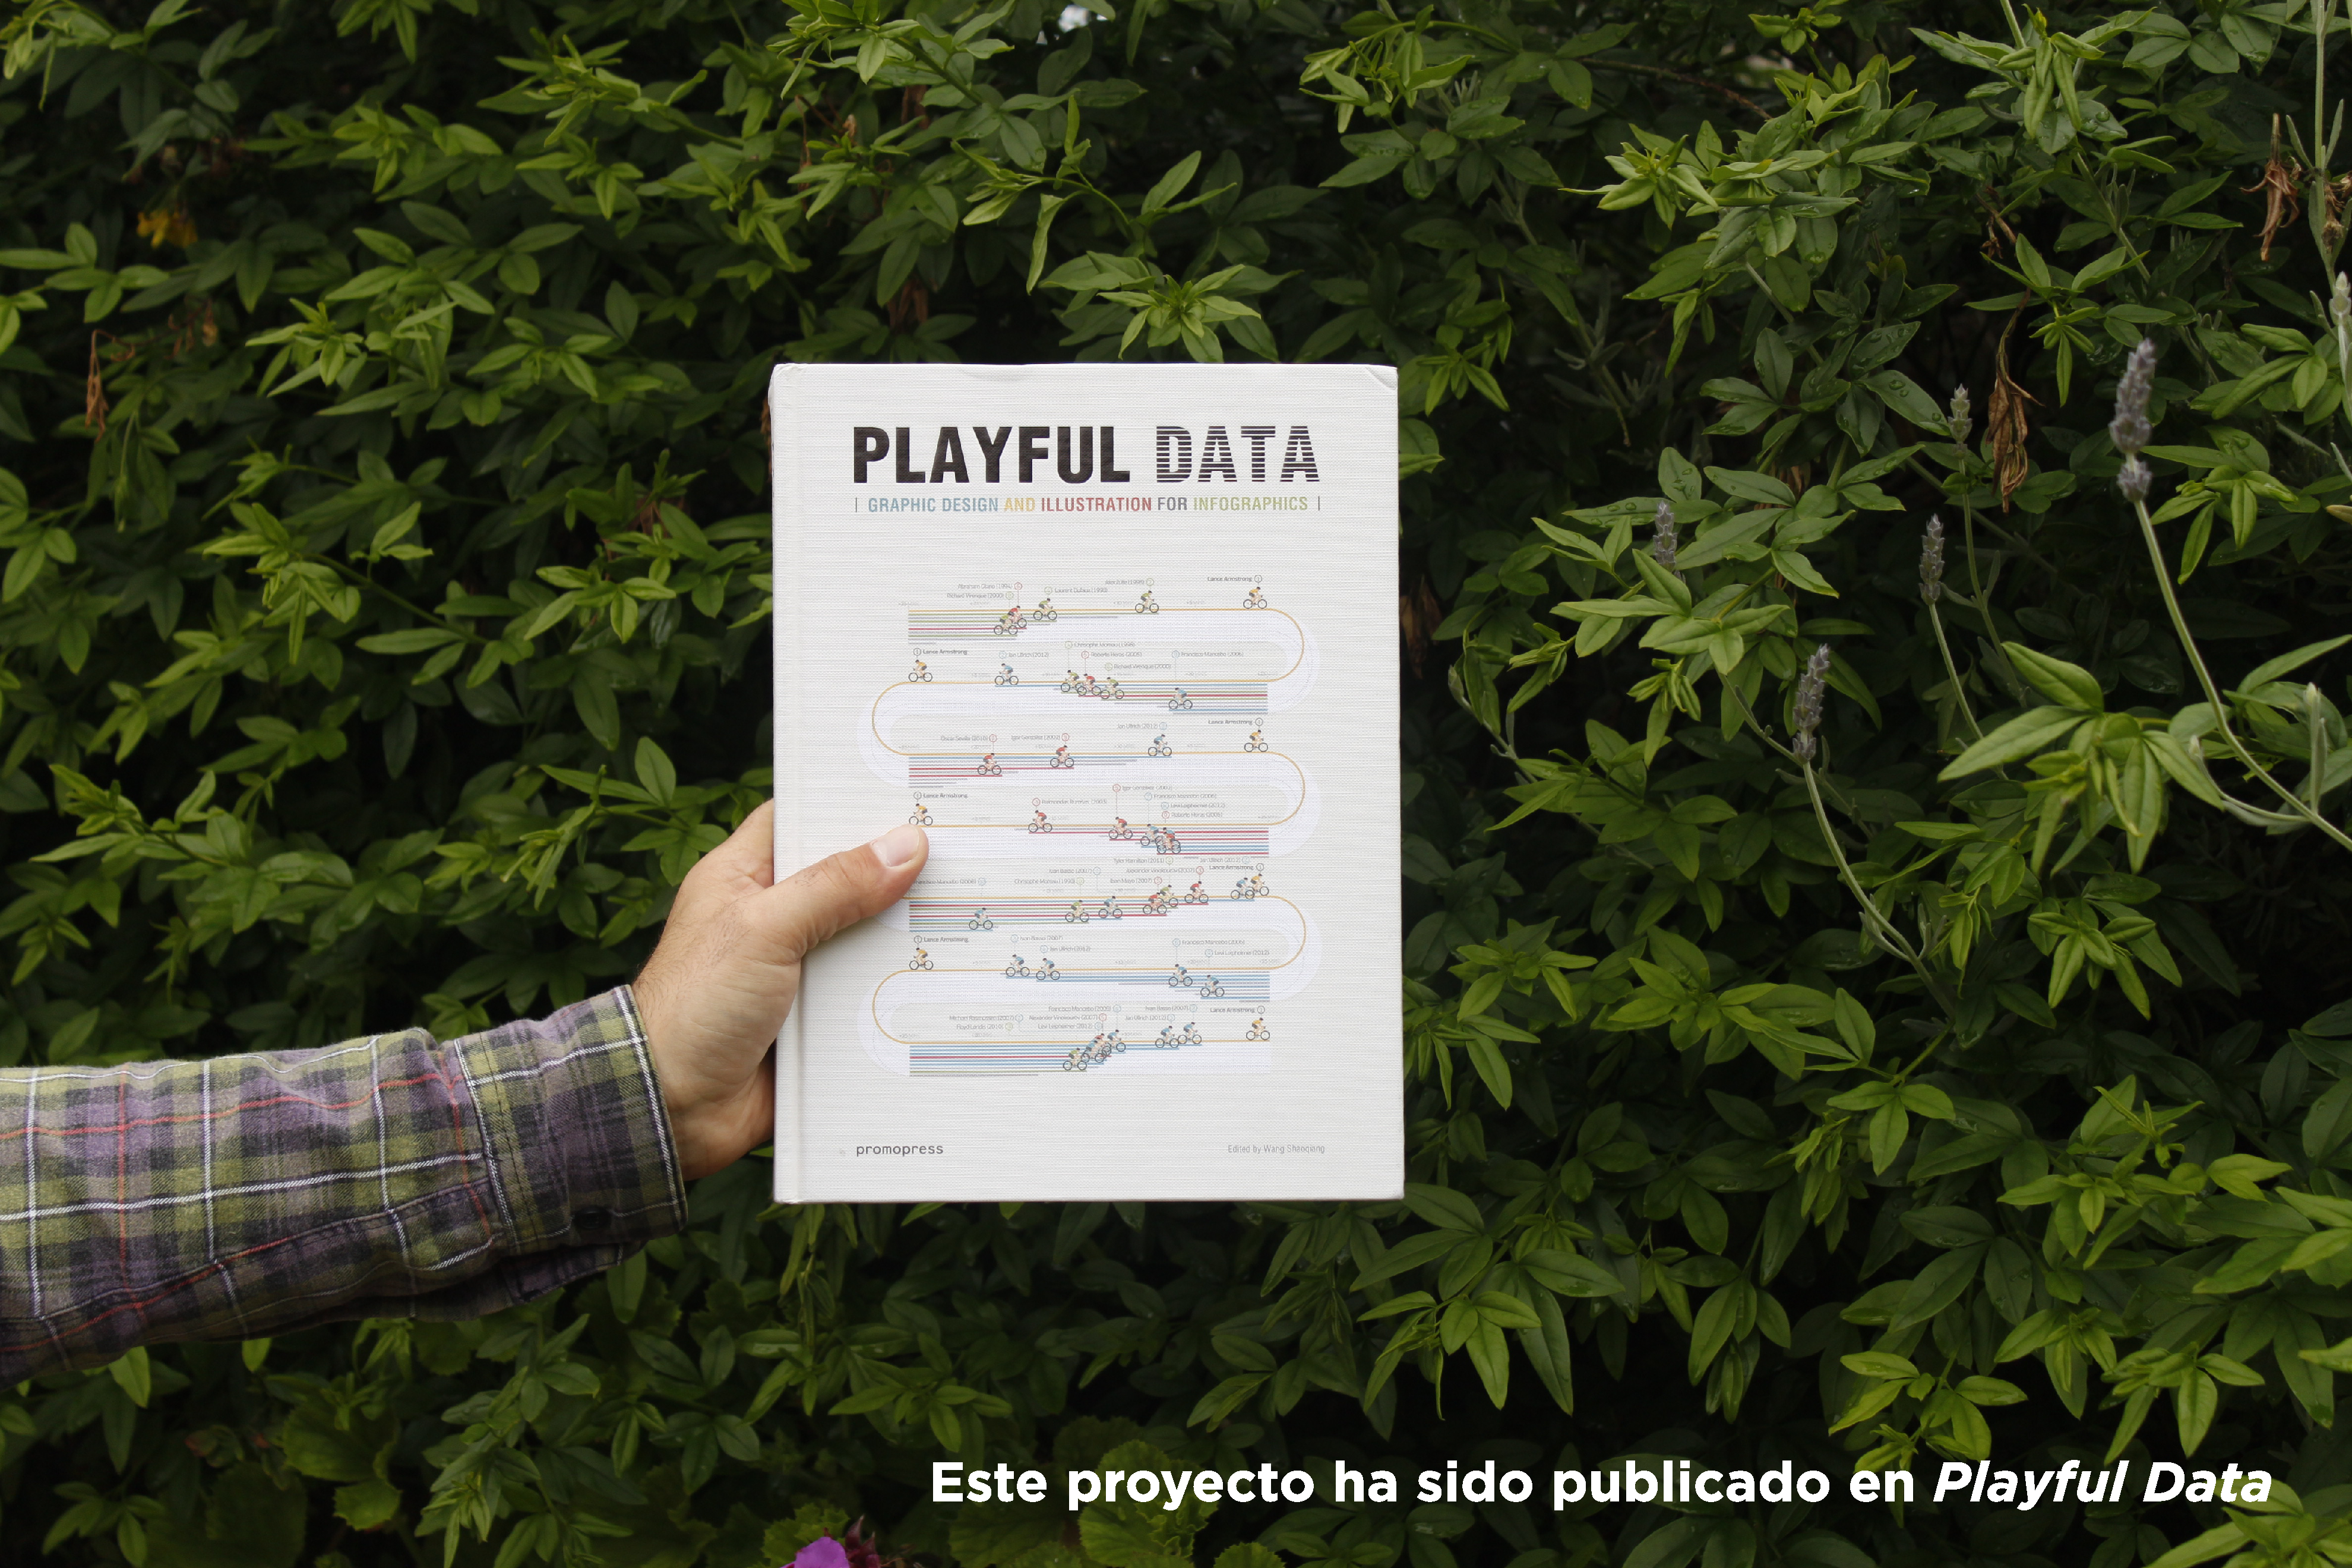 Playful data book cover photo in the garden